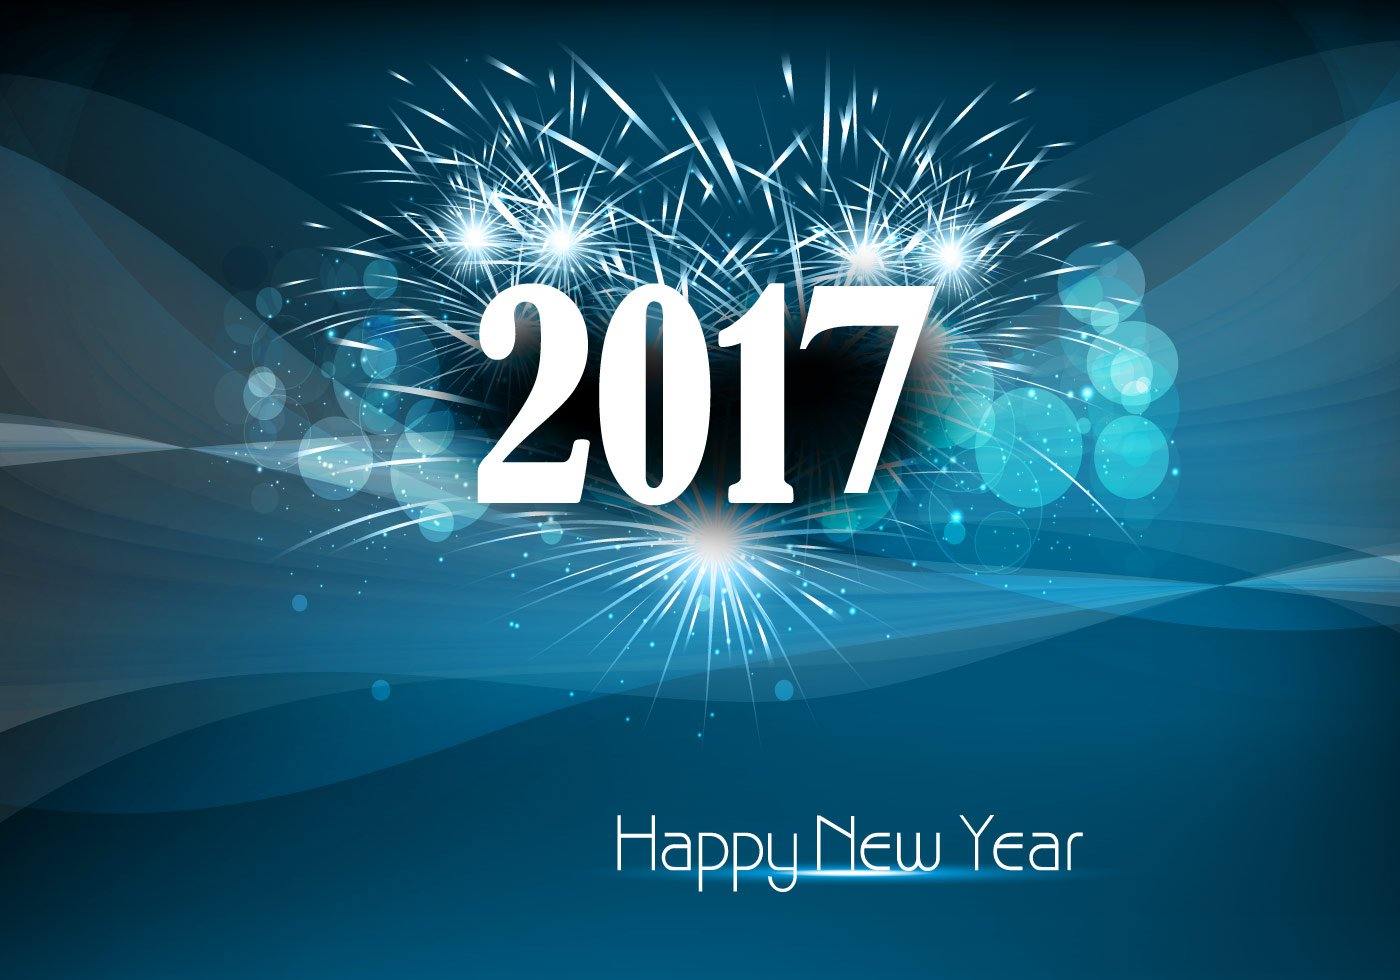 Best Live Happy New Year 2017 Wallpaper For Mobile